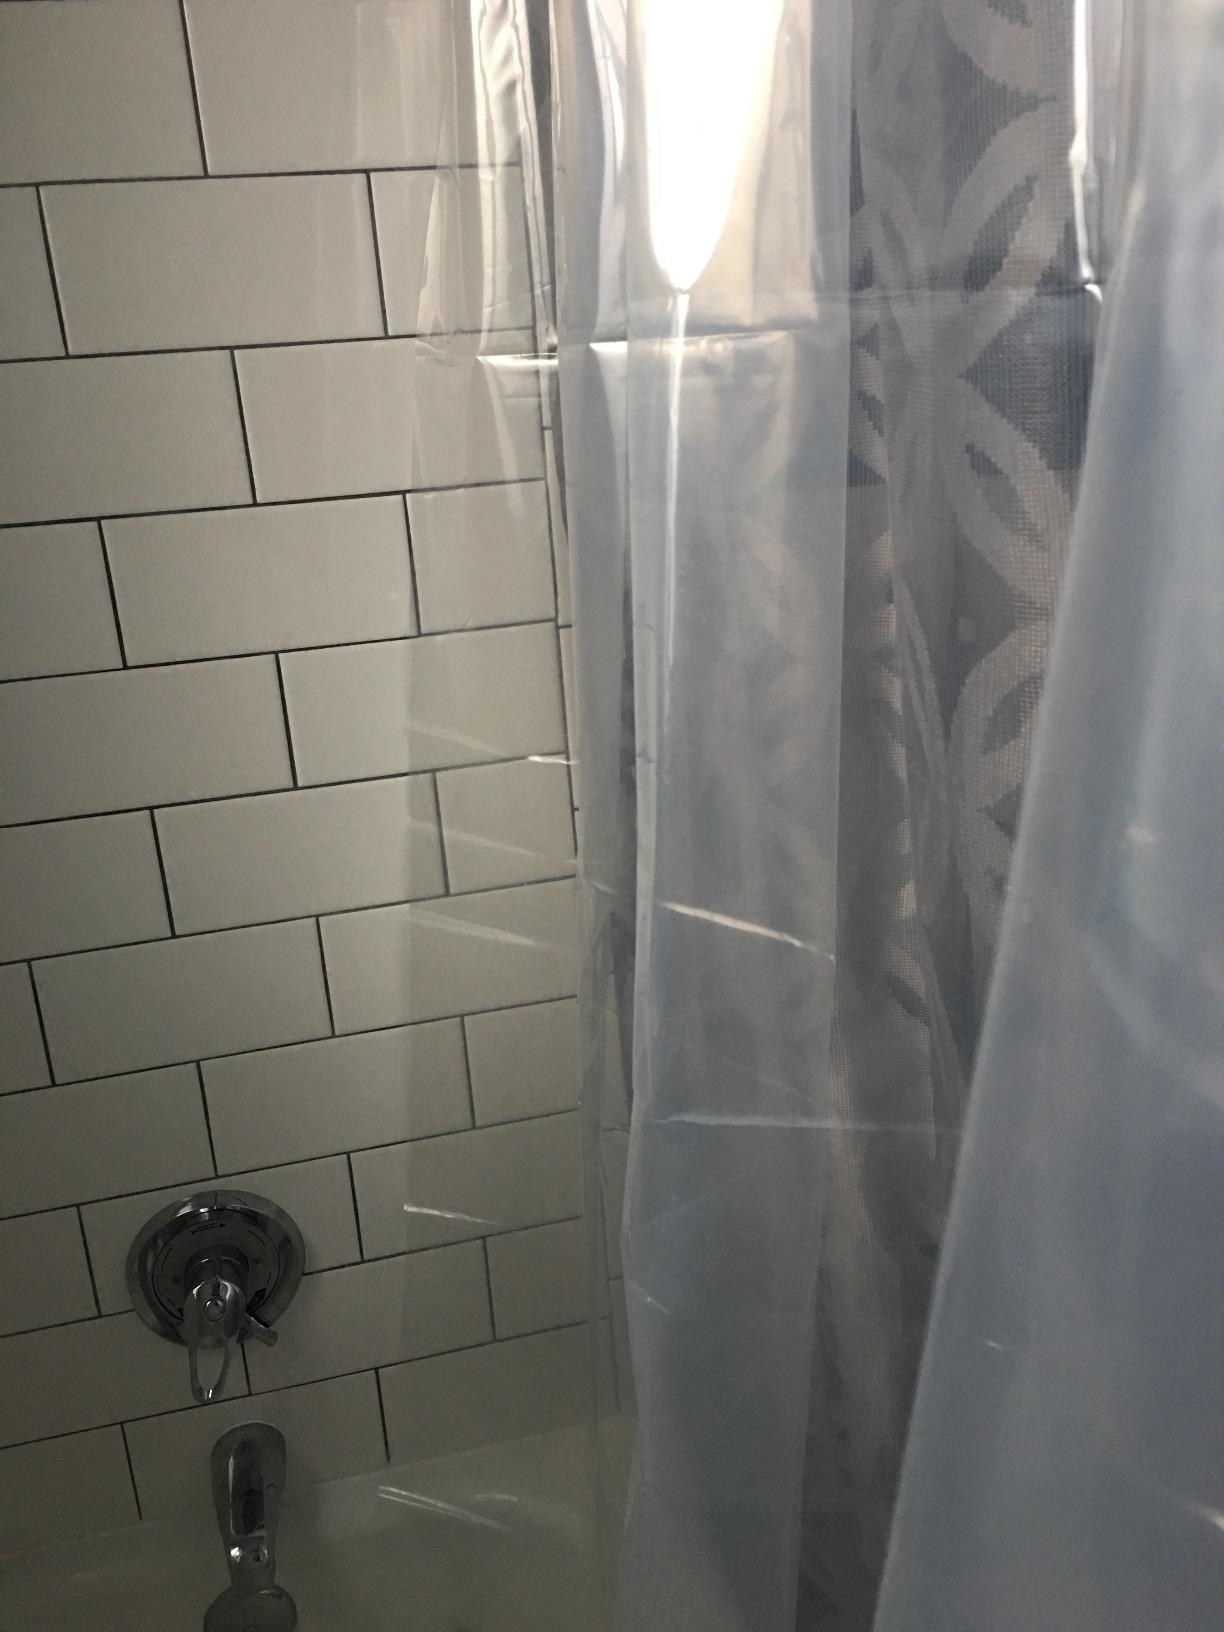 A reviewer's photo of a clear shower curtain in the bathroom